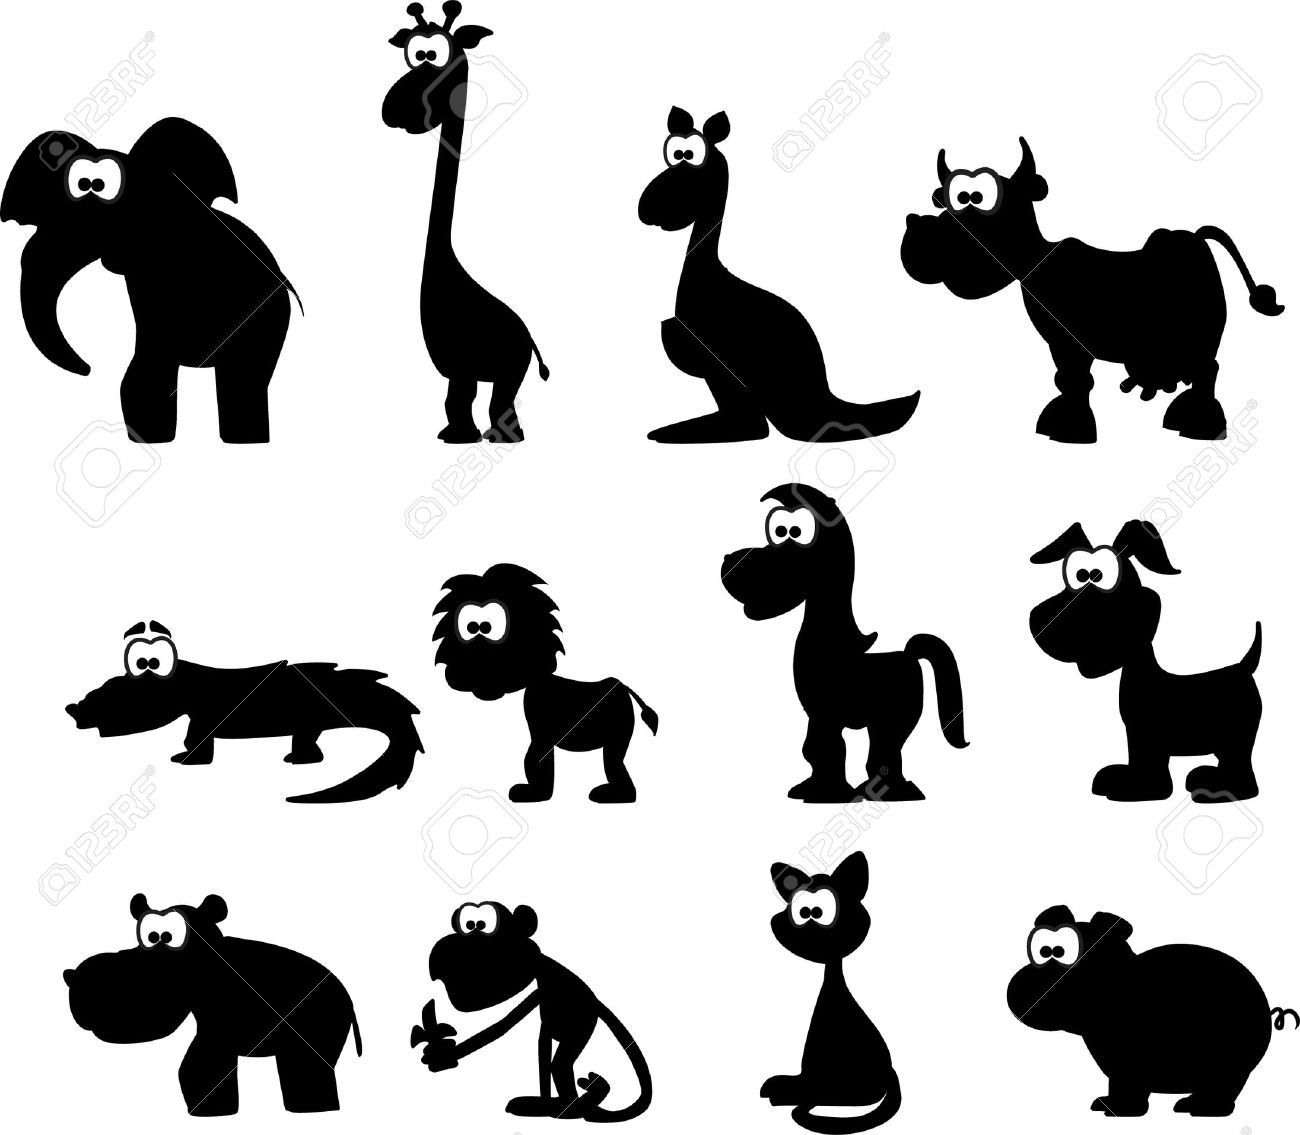 1300x1135 Cartoon Silhouettes Of Animals Royalty Free Cliparts, Vectors,